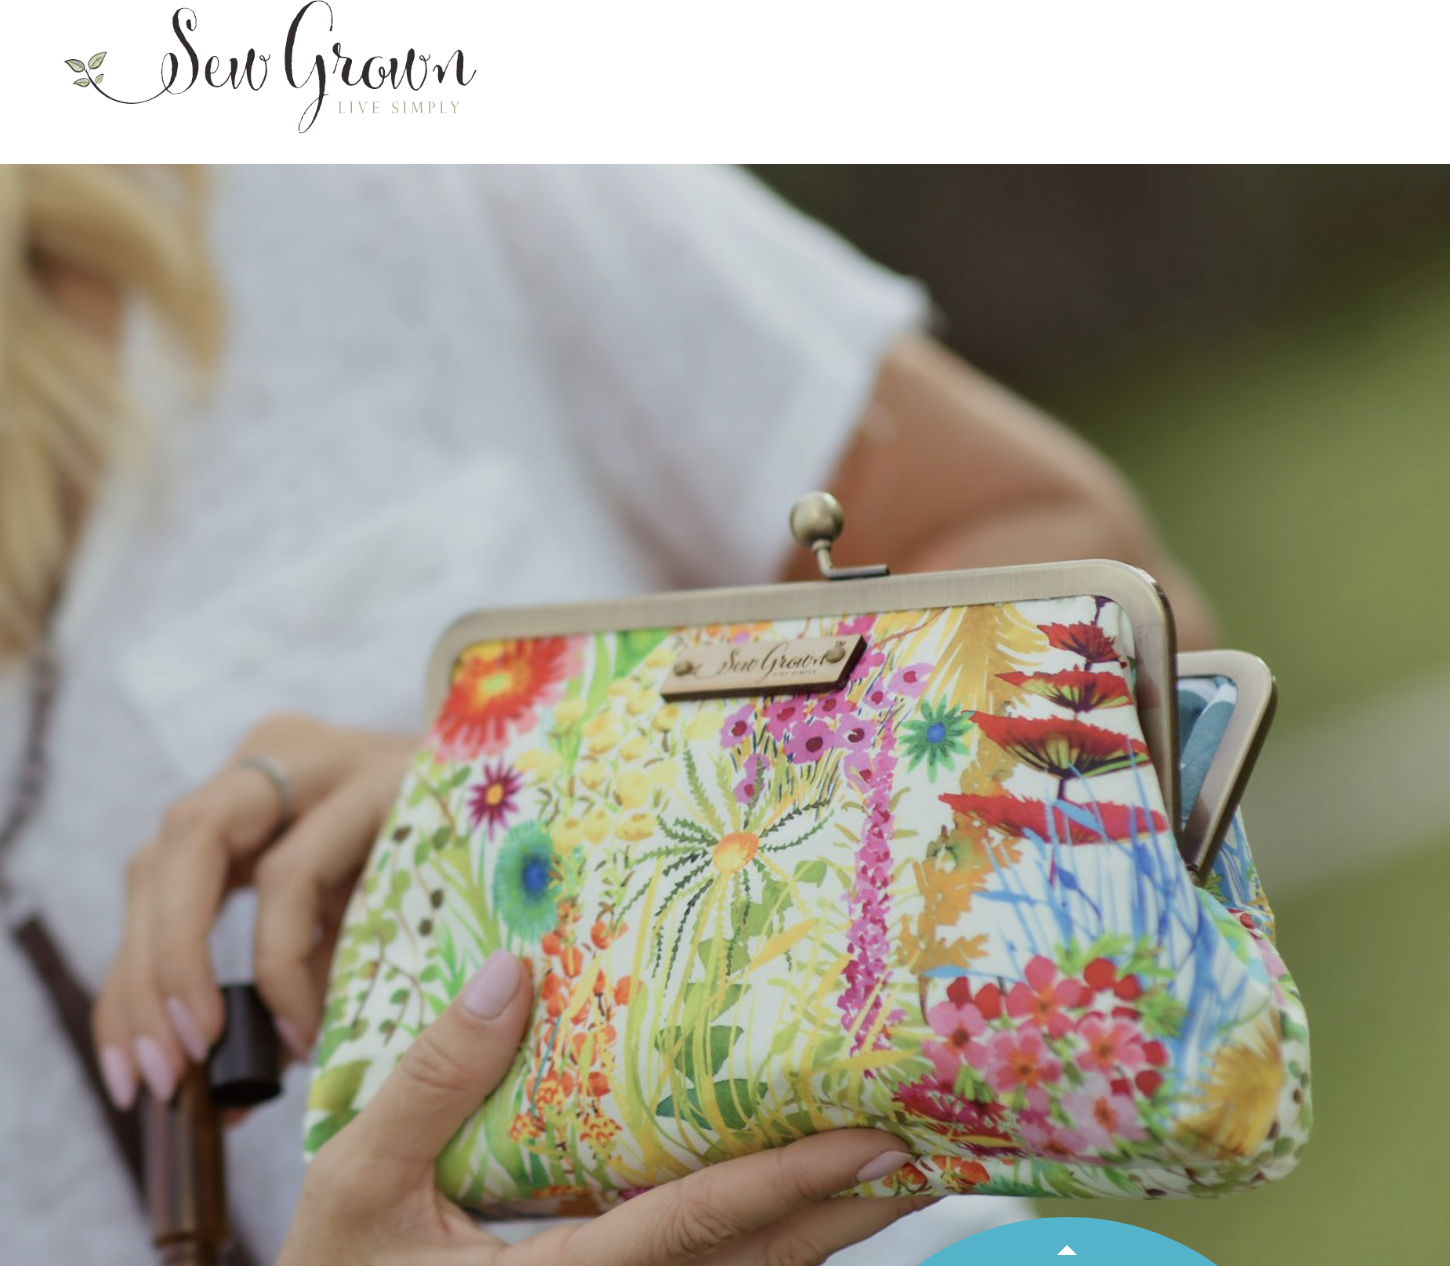 For Sew Grown products (clutches, bags for essential oils, etc.), please click here. - (Note these are affiliate links, thanks for your support!)